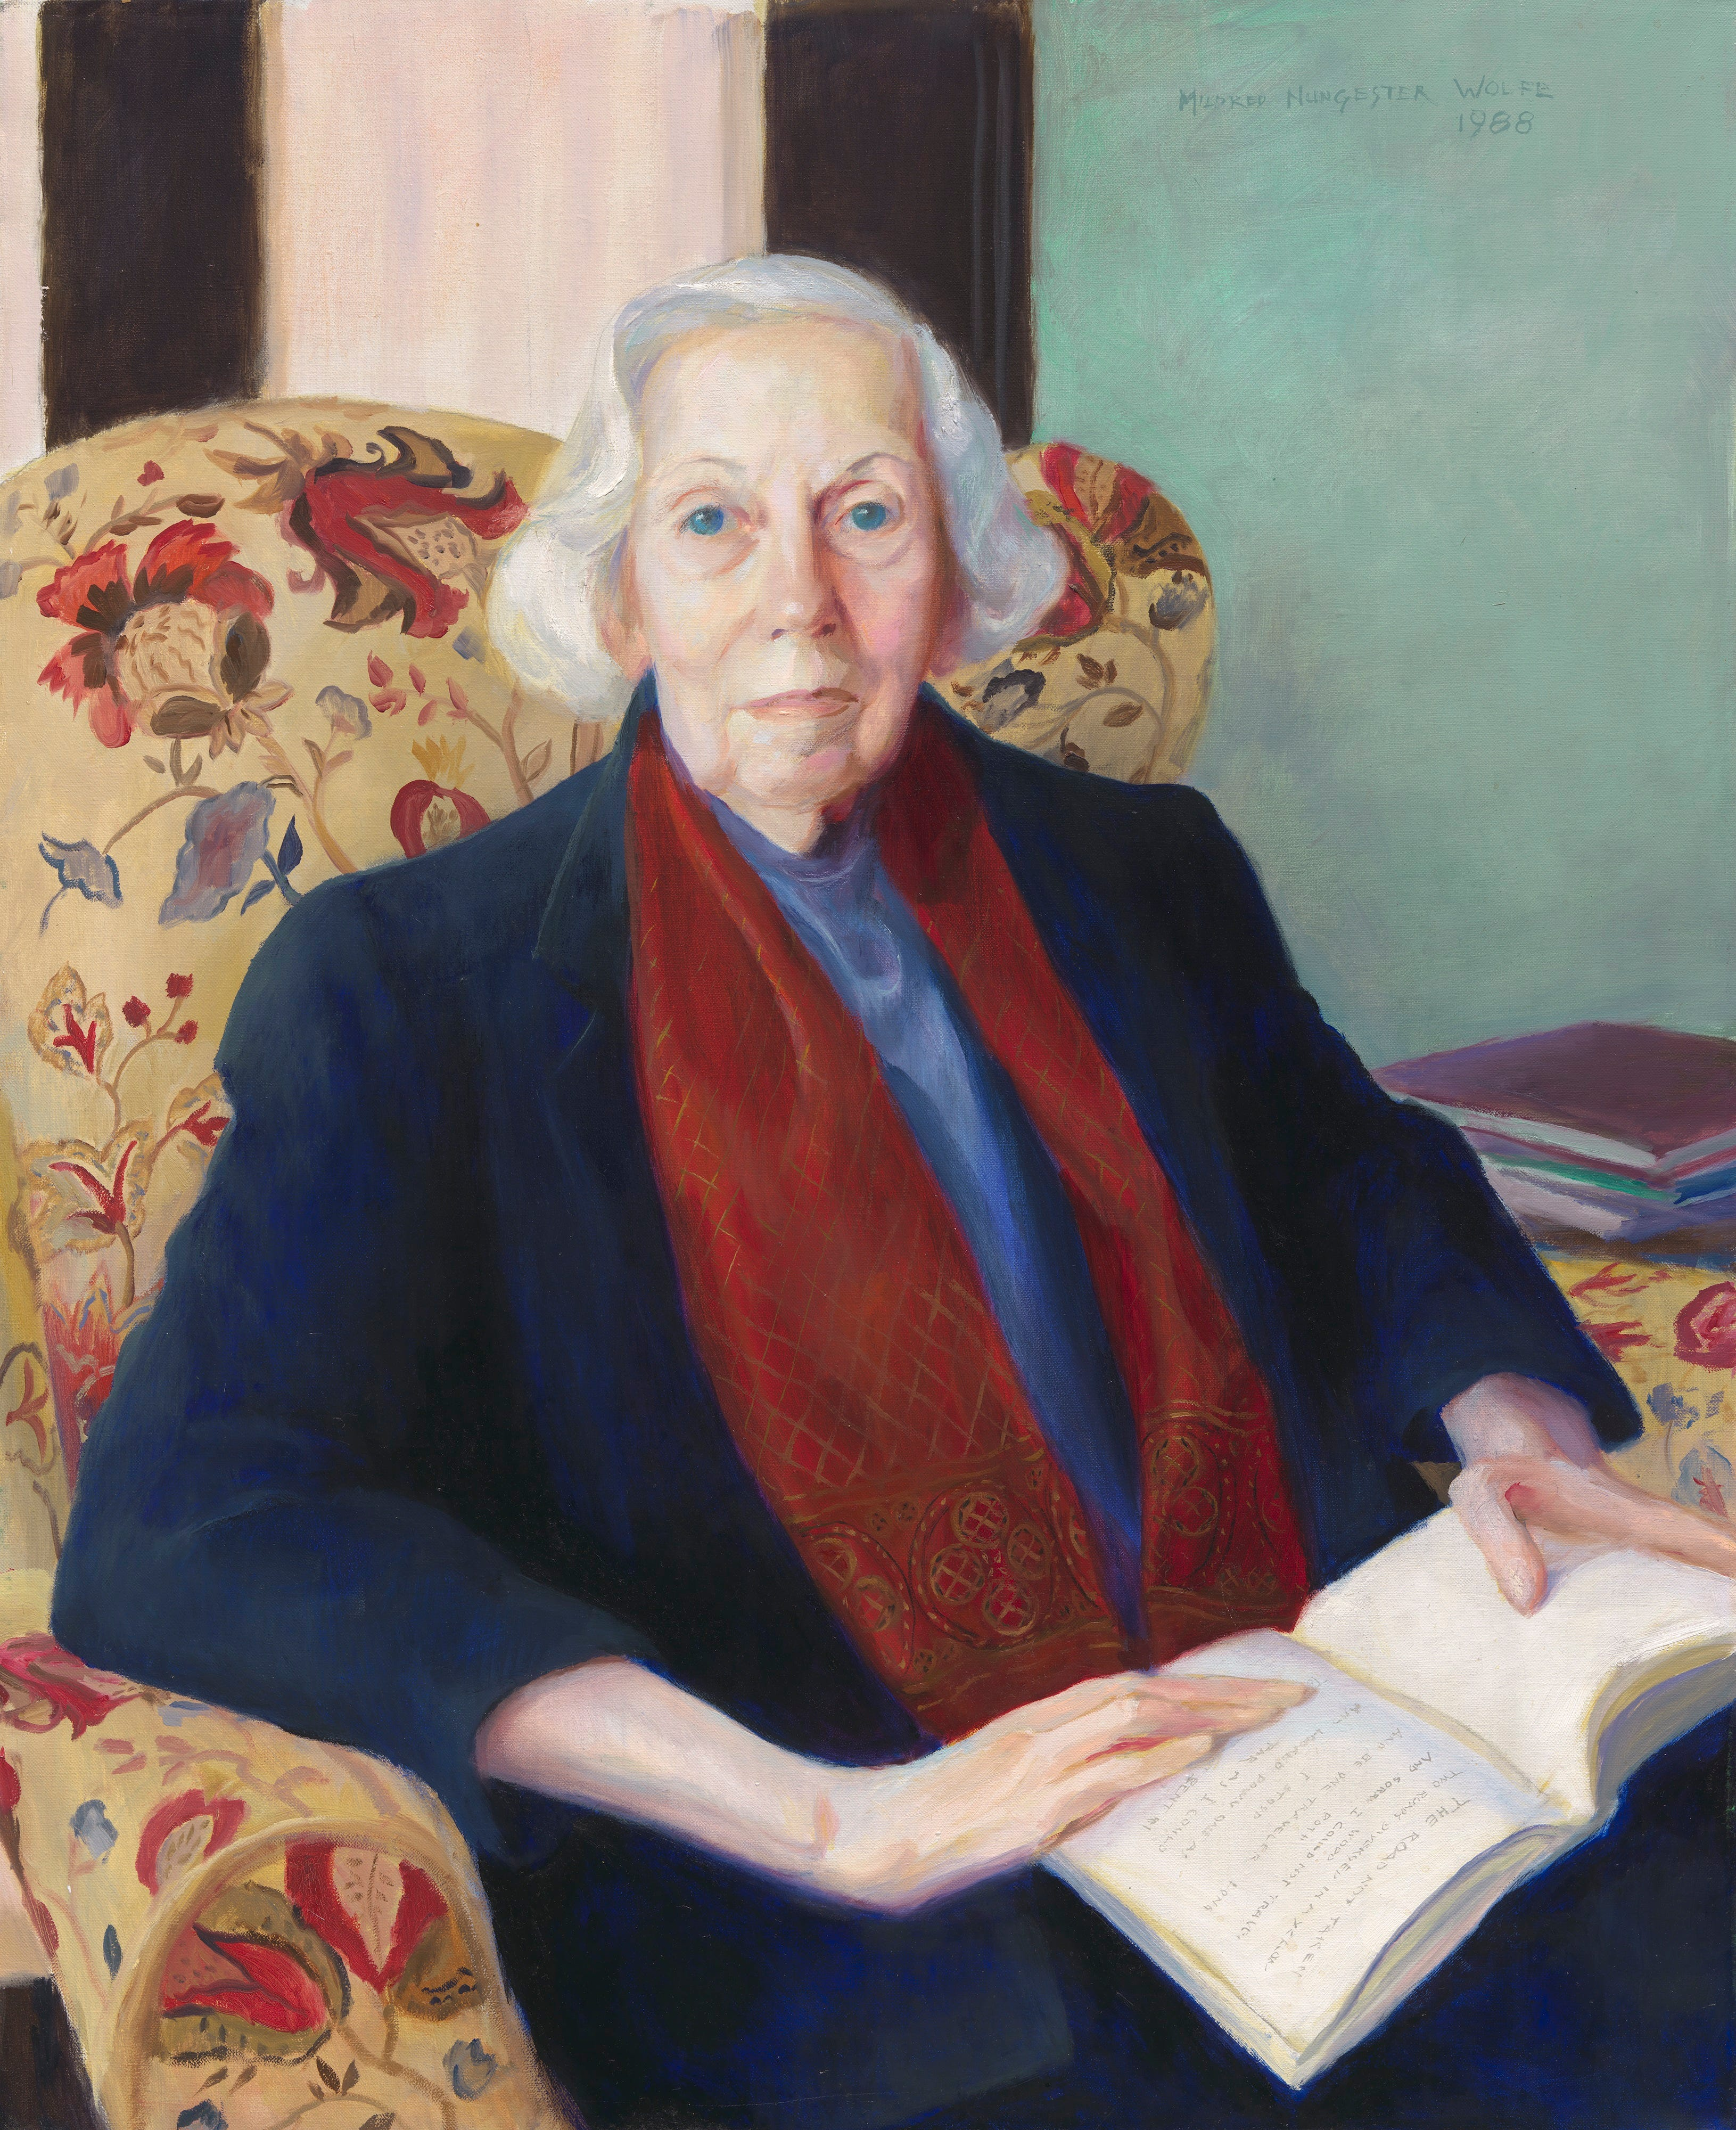 visit charity eudora welty A visit of charity in the short story of a visit of charity by eudora welty, a fourteen-year-old girl visits two women in a home for the elderly to bring them a plant and to earn points for campfire girls.